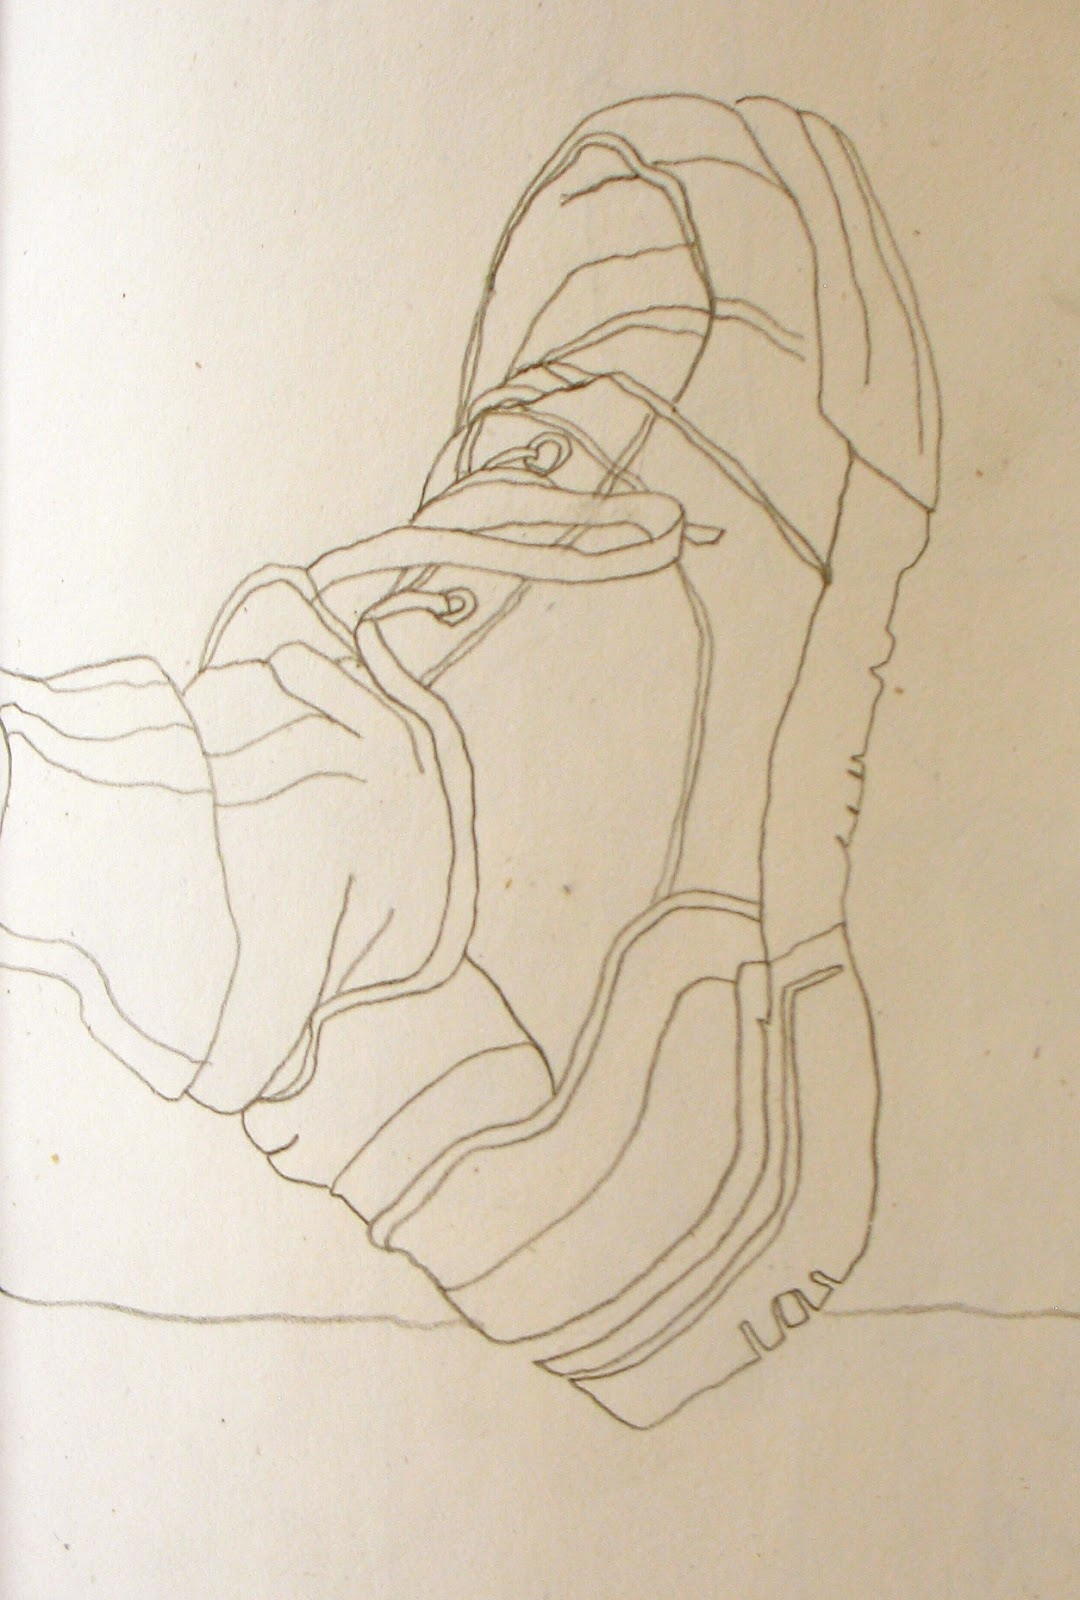 Drawn shoe contour drawing Or Or in looking a